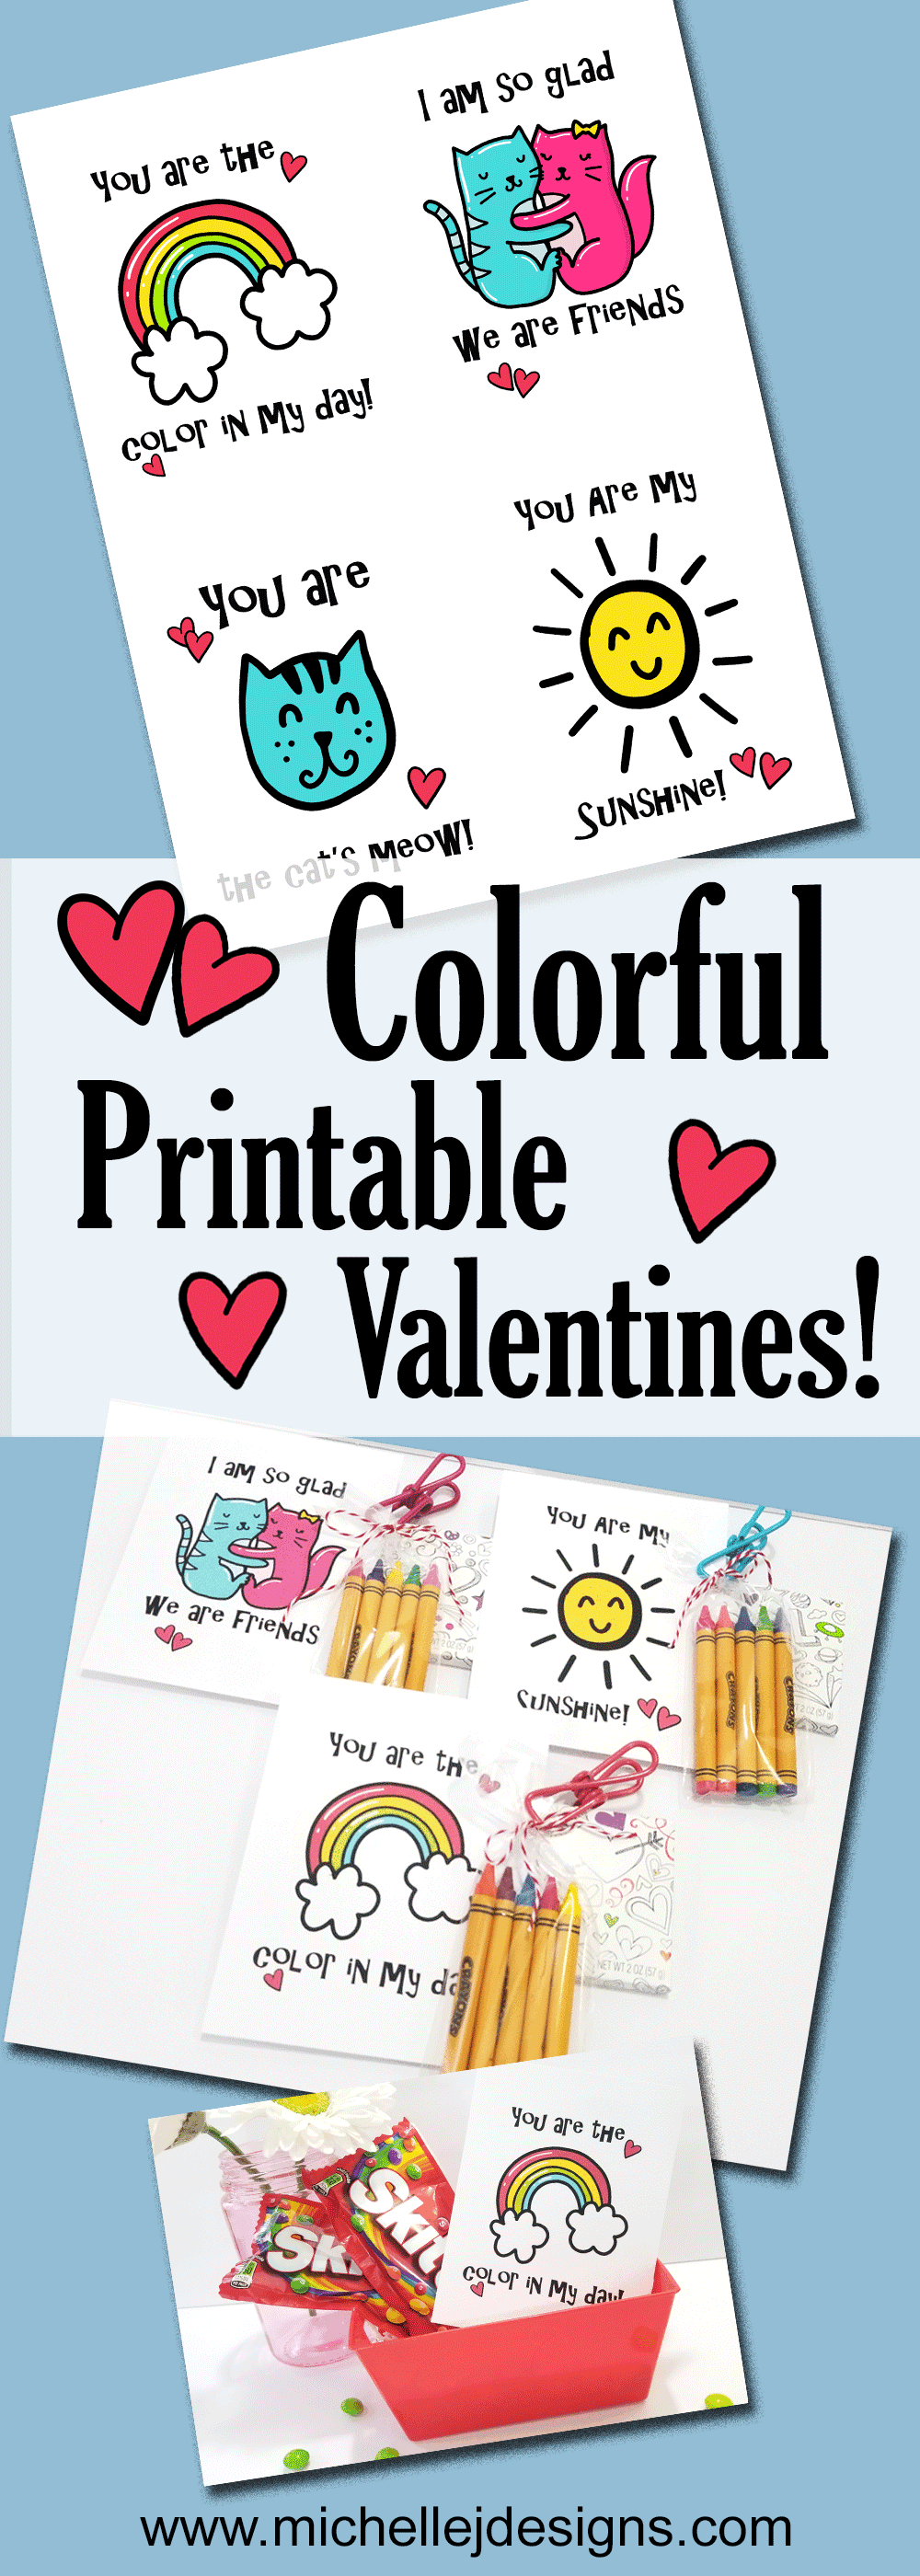 These bright, colorful Valentines are perfect for many occasions, not just Valentine's Day. - www.michellejdesigns.com